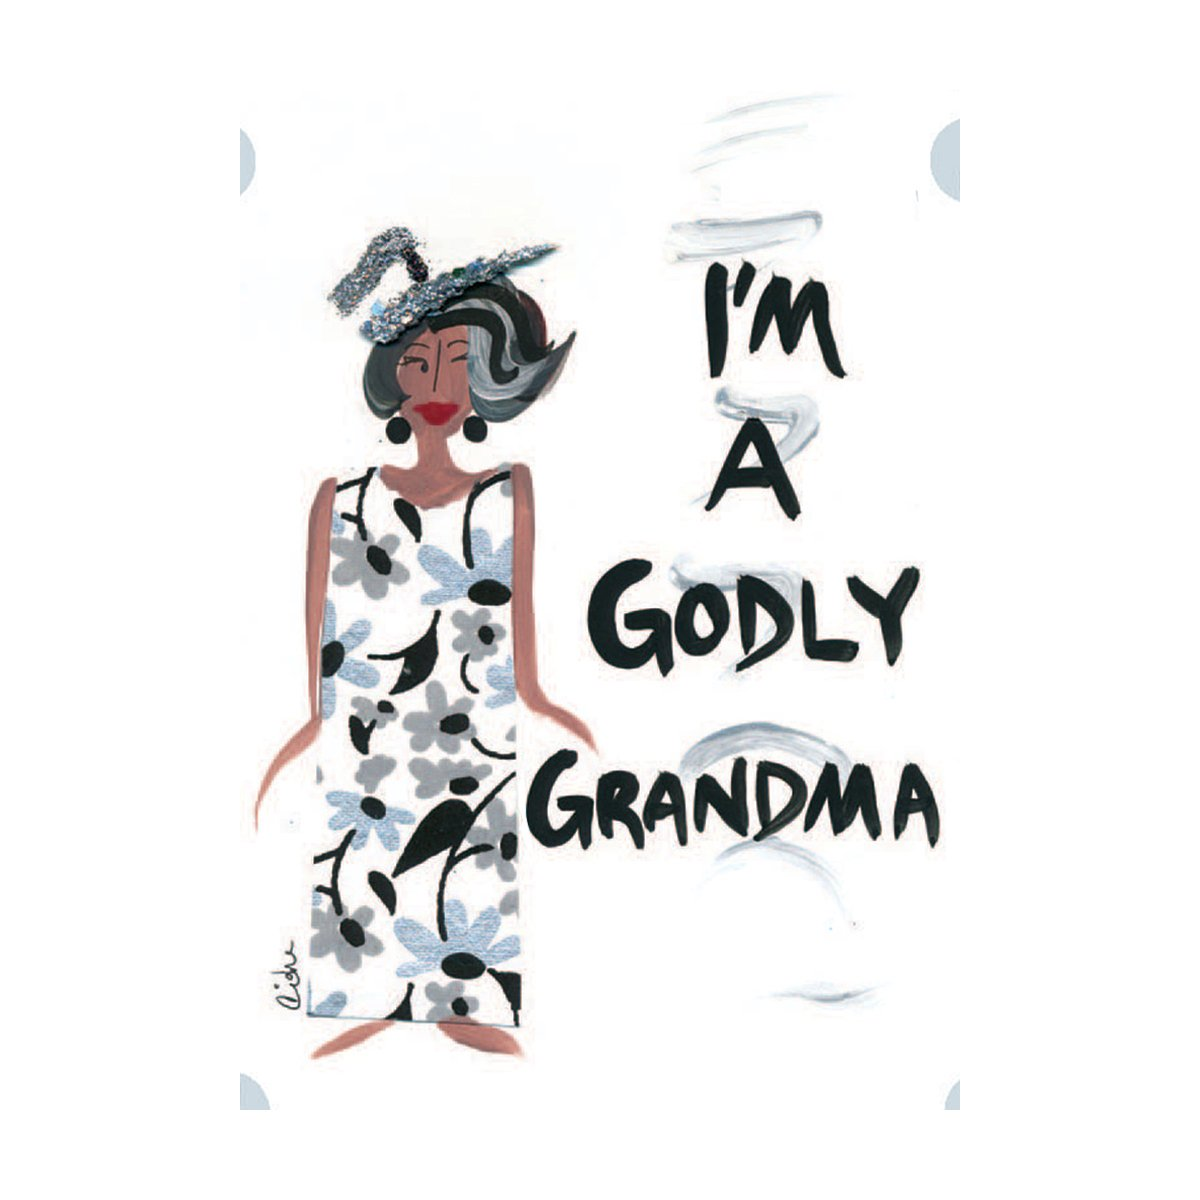 I'm a Godly Grandma: Cidne Wallace Magnet by Shades of Color